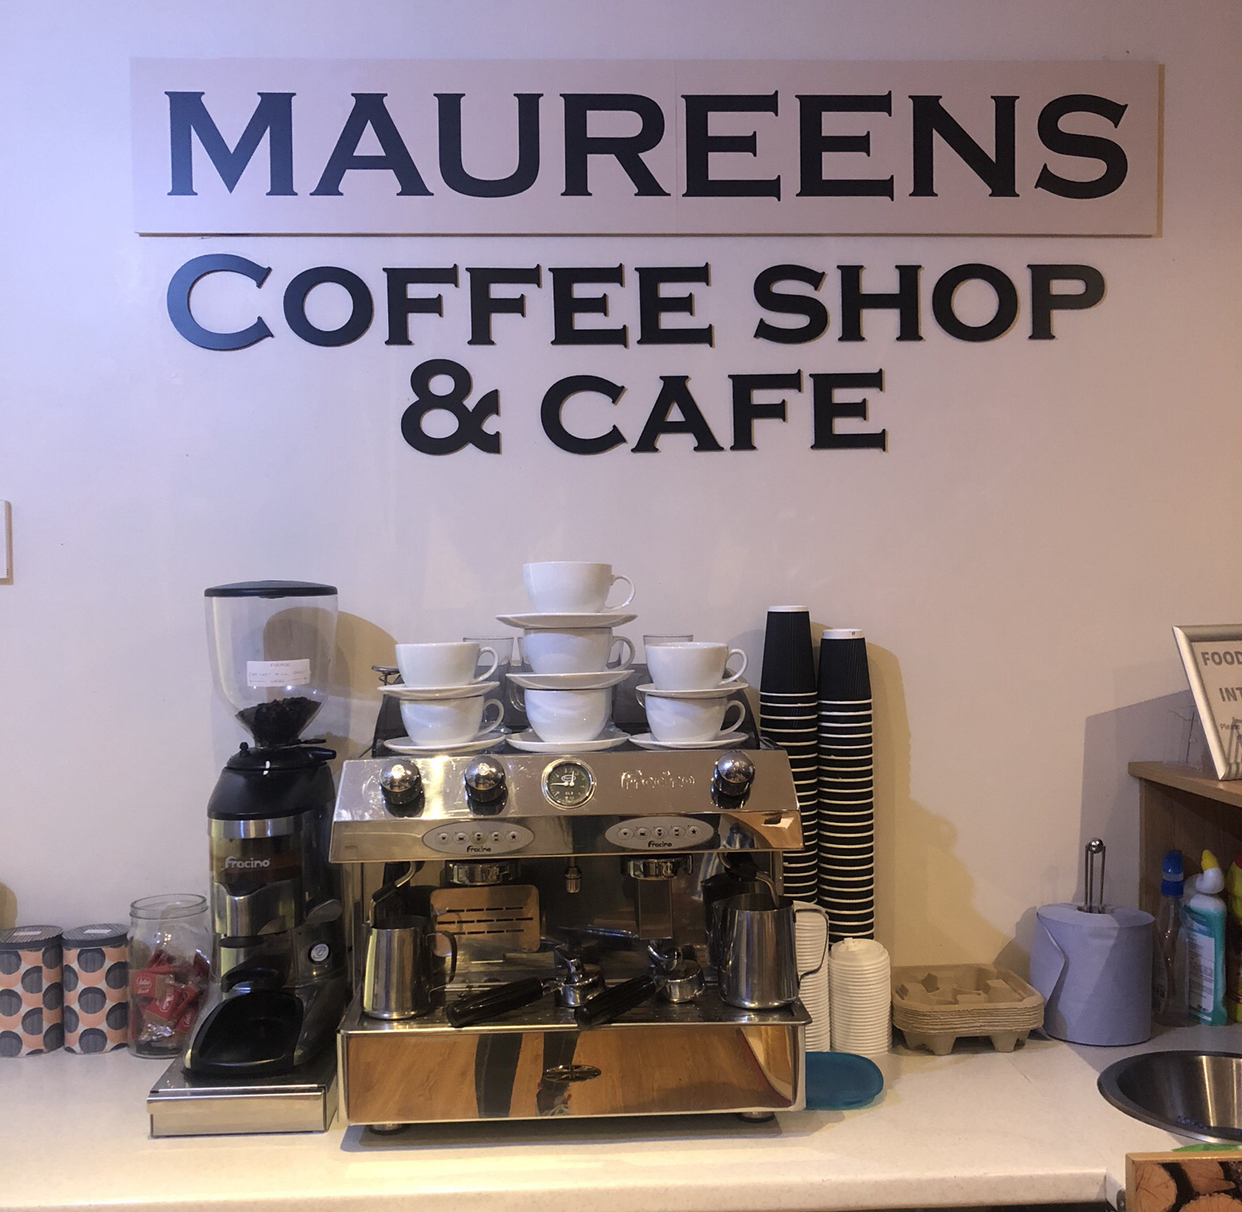 Maureen's coffee shop and cafe